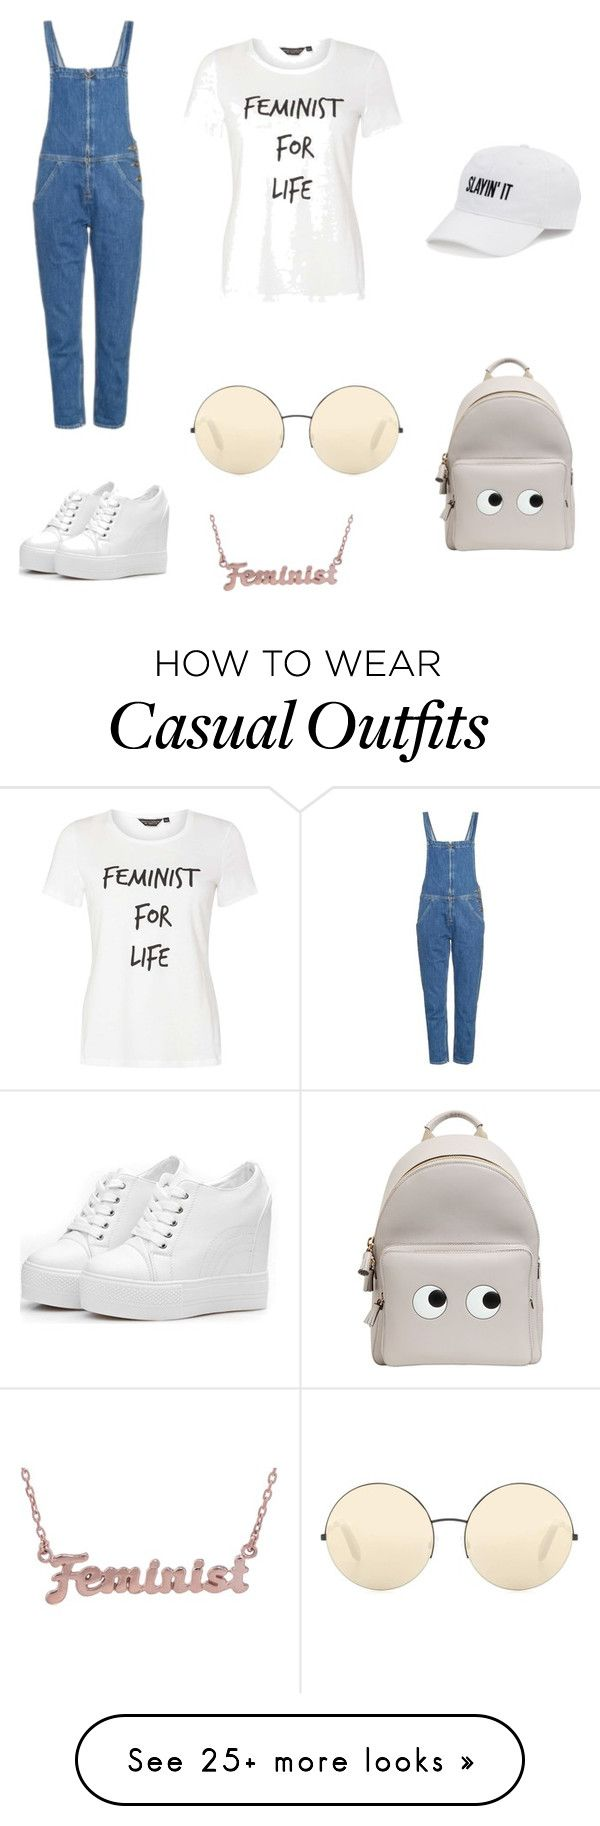 """""""Casual but slaying feminist"""" by le-weirdo-1 on Polyvore featuring M.i.h Jeans, Victoria Beckham, Dorothy Perkins, me you, SO and Anya Hindmarch"""